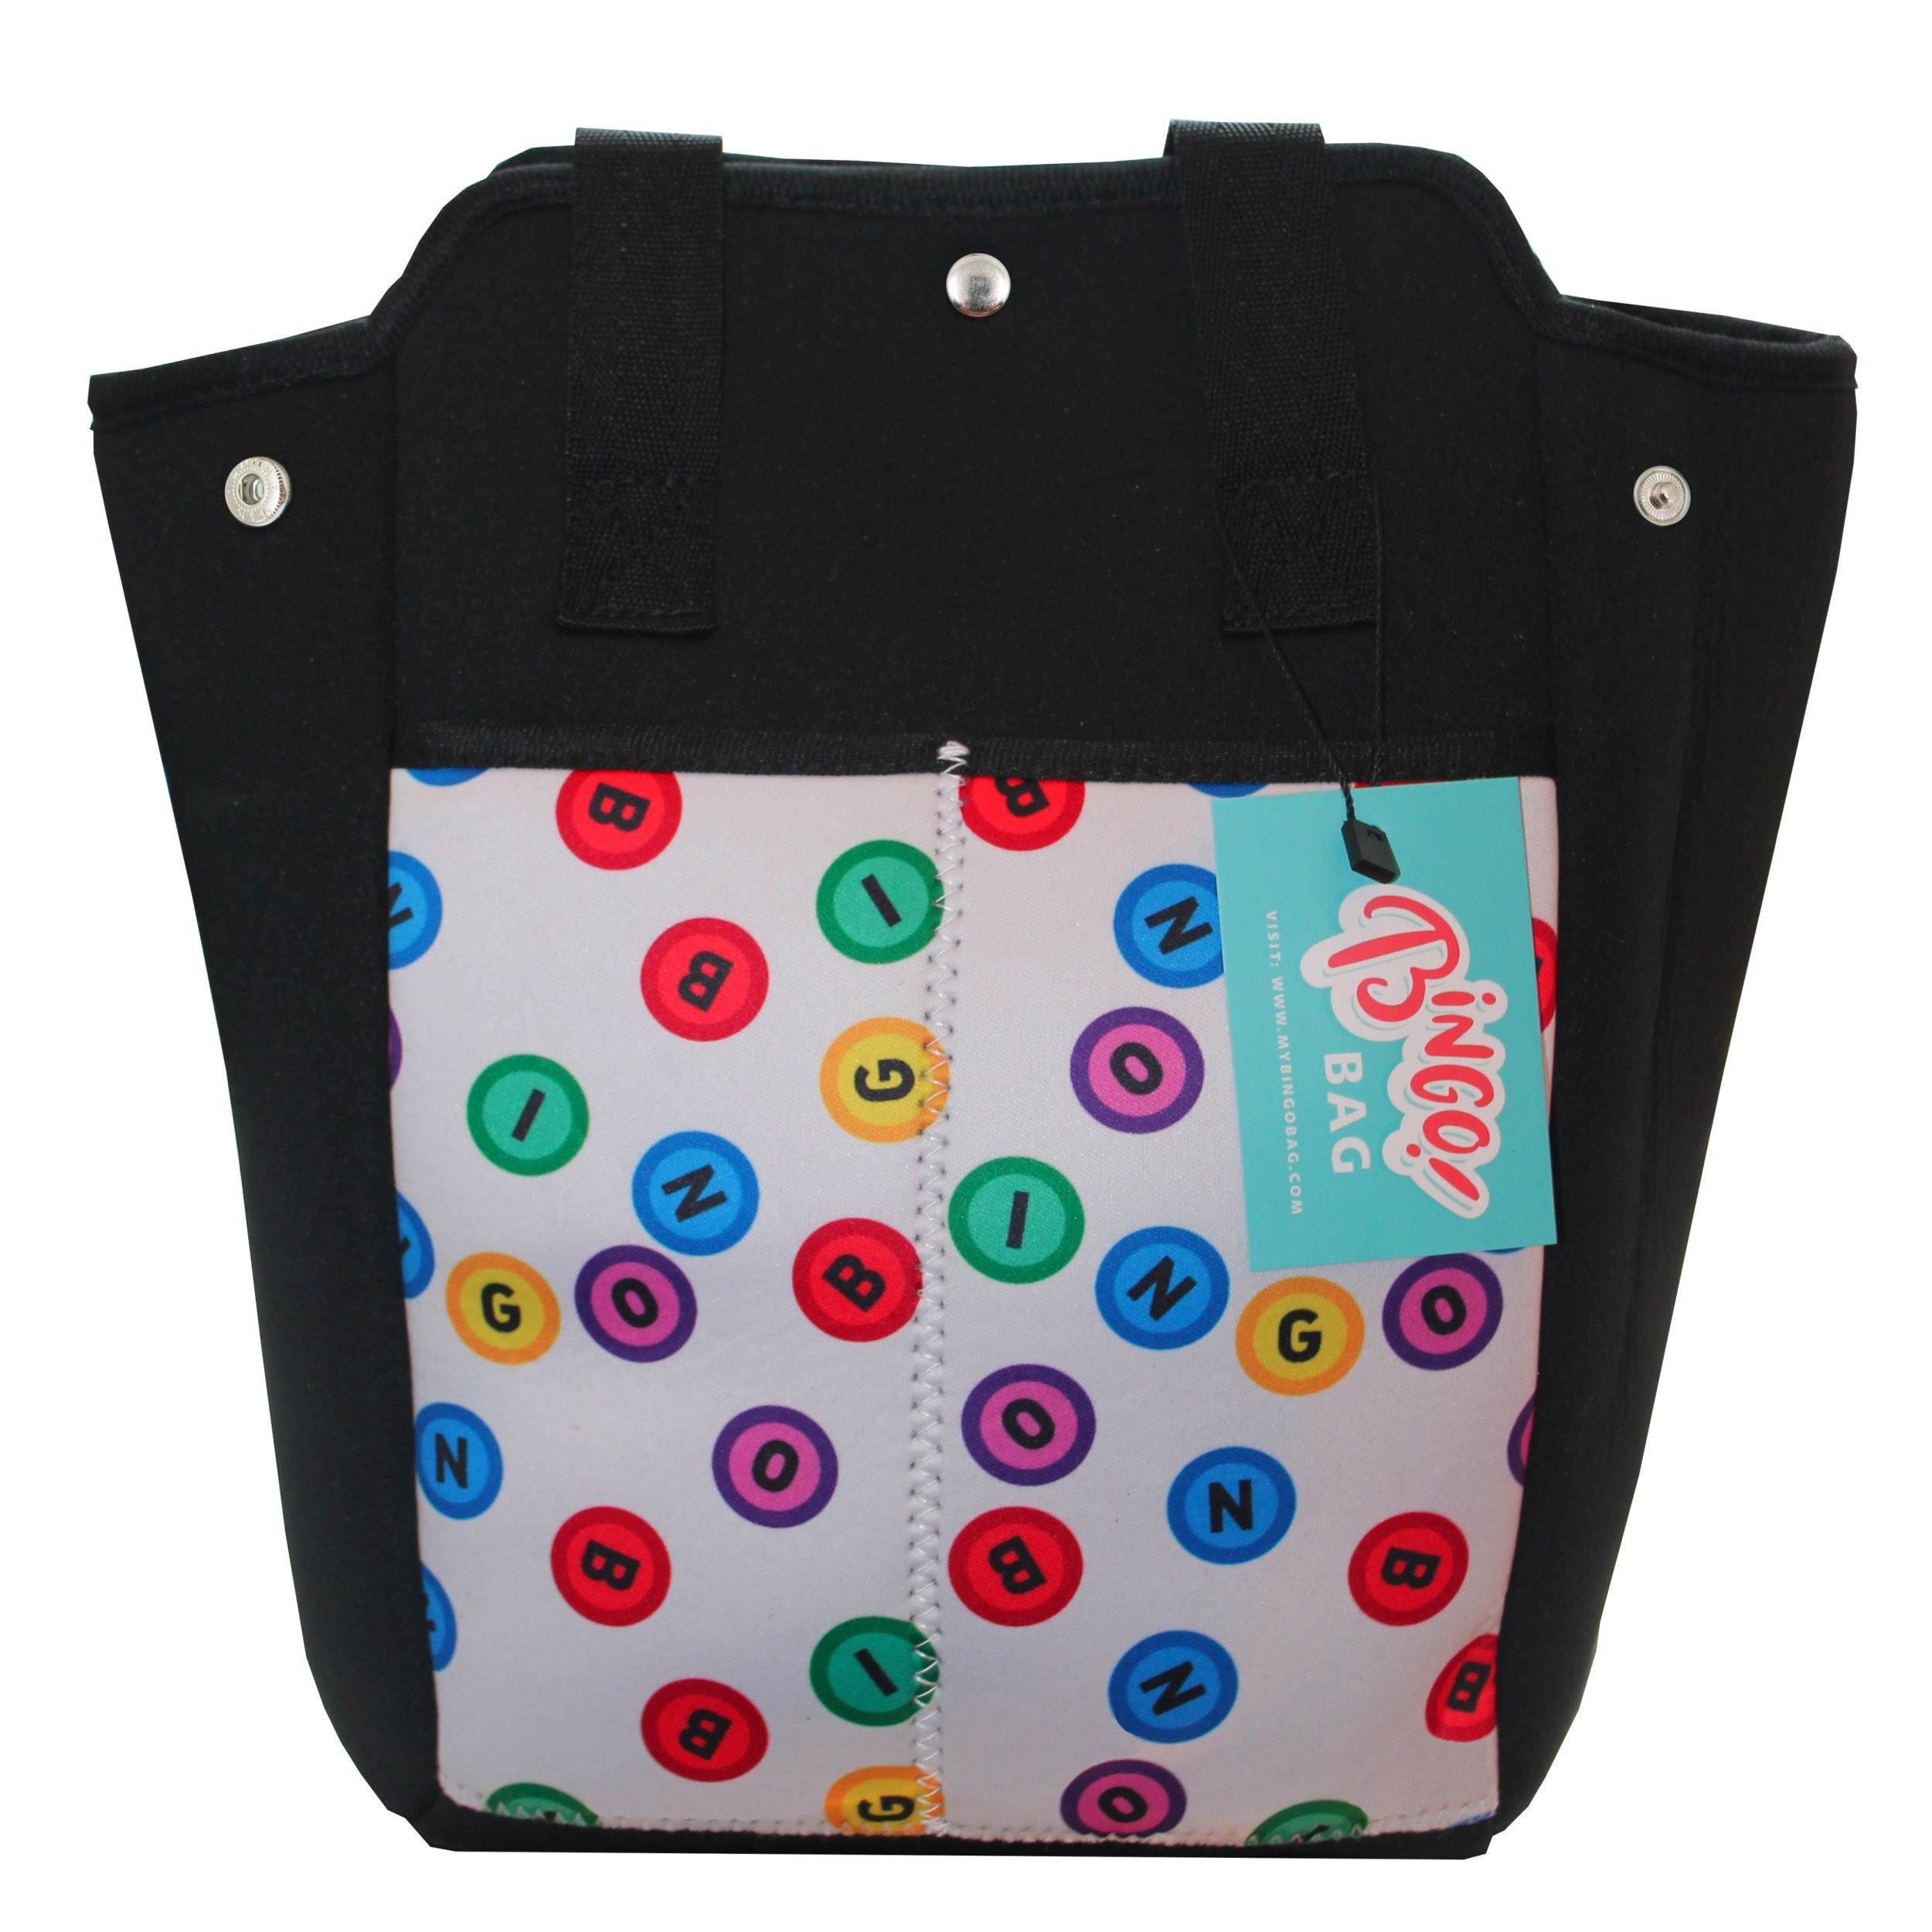 Signature BINGO Dauber and Accessories Bingo Bag - 4 Large Dauber Pockets